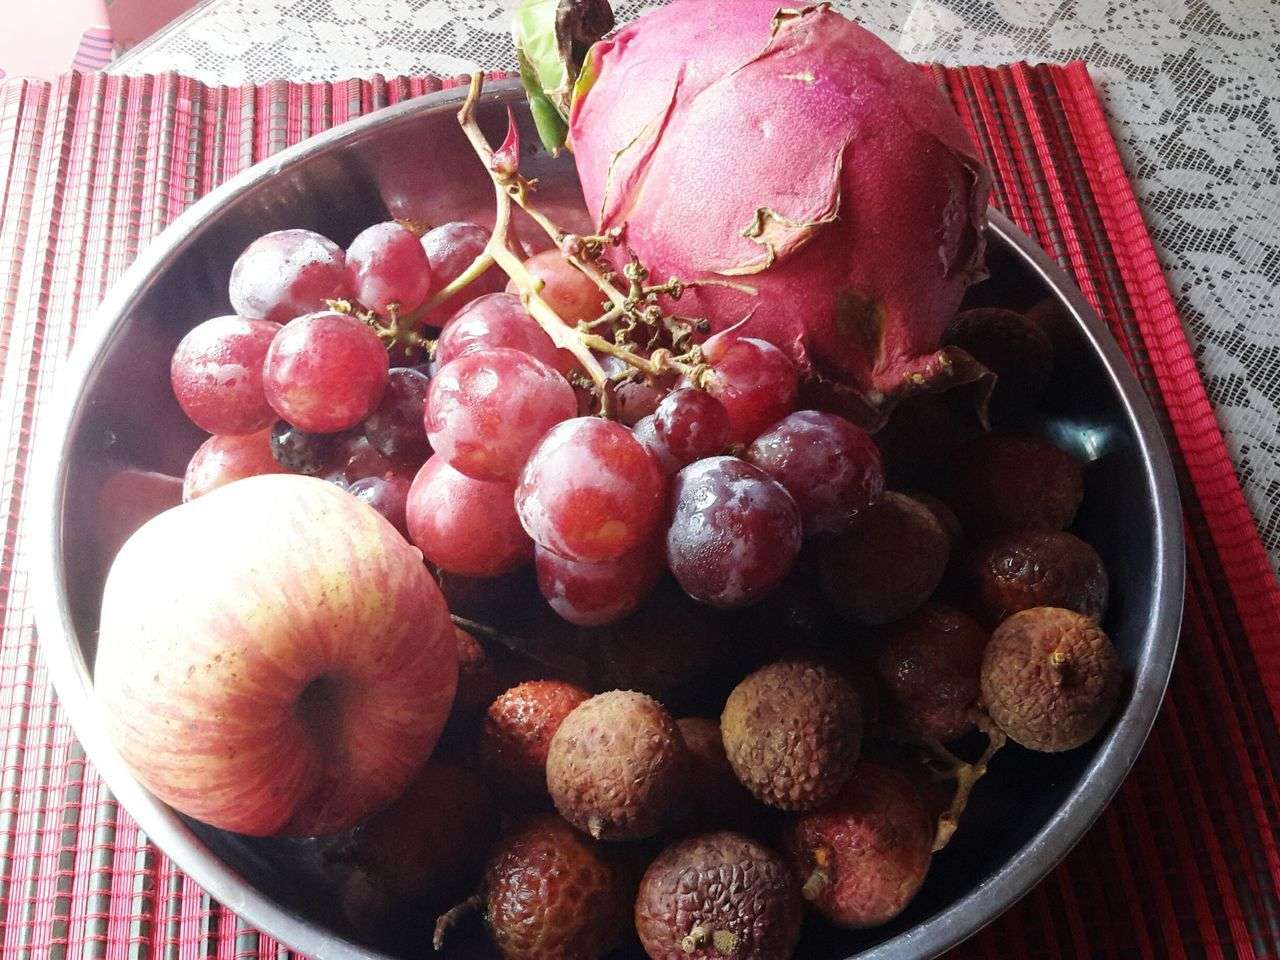 food and drink, fruit, food, healthy eating, freshness, still life, table, bowl, no people, indoors, close-up, day